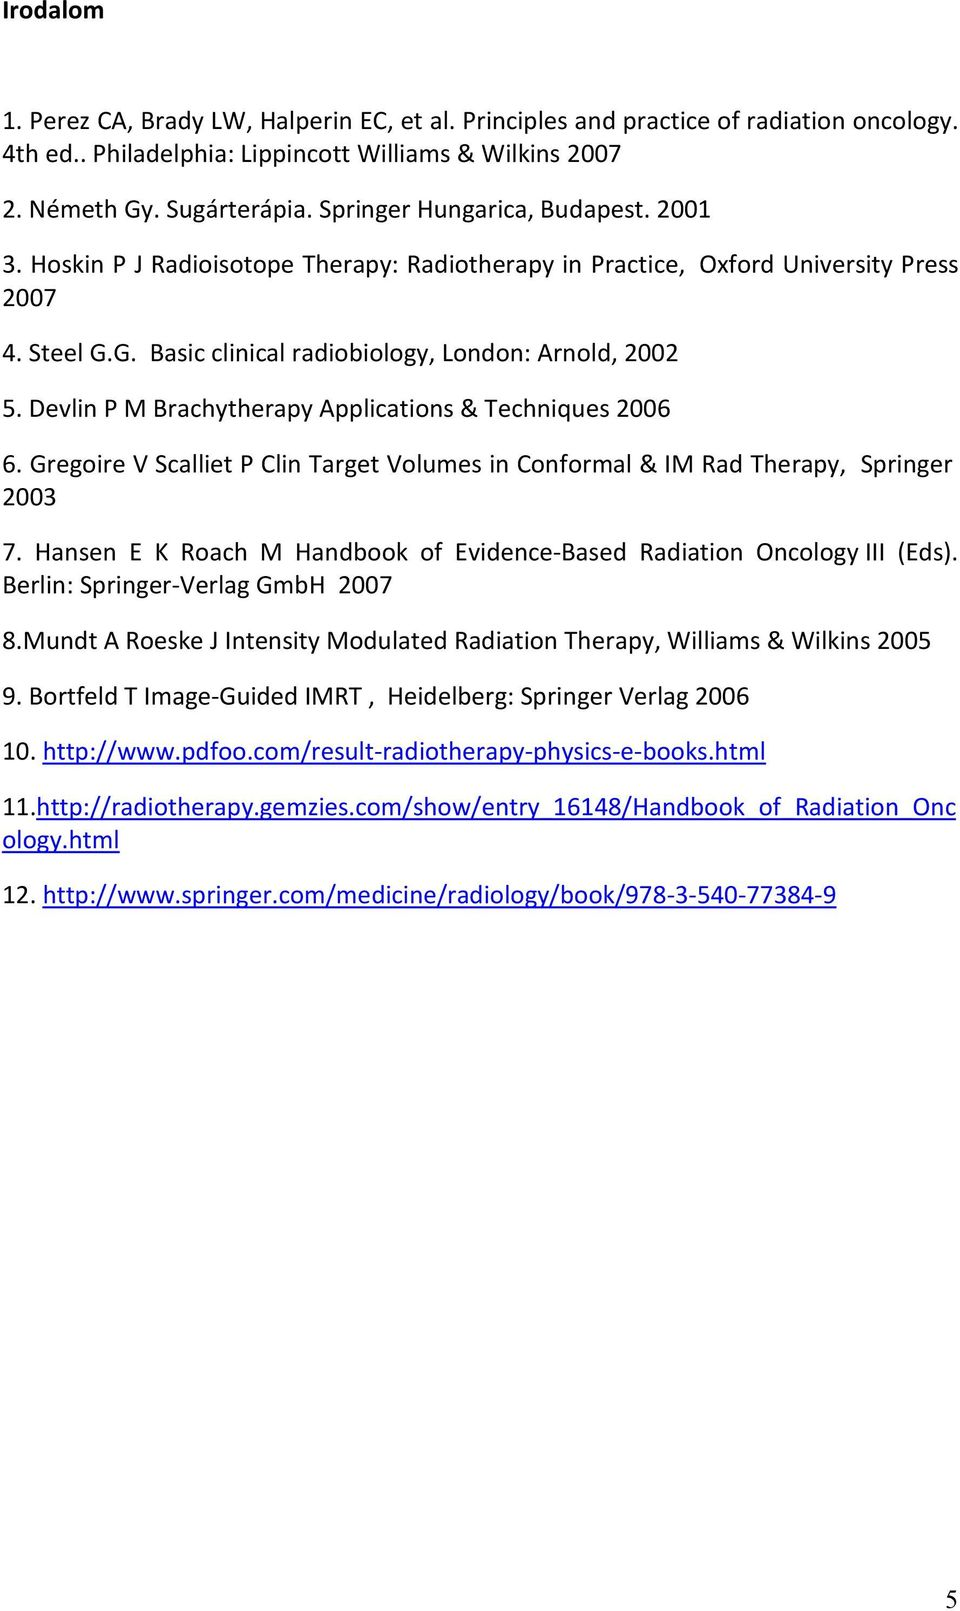 Devlin P M Brachytherapy Applications & Techniques 2006 6. Gregoire V Scalliet P Clin Target Volumes in Conformal & IM Rad Therapy, Springer 2003 7.